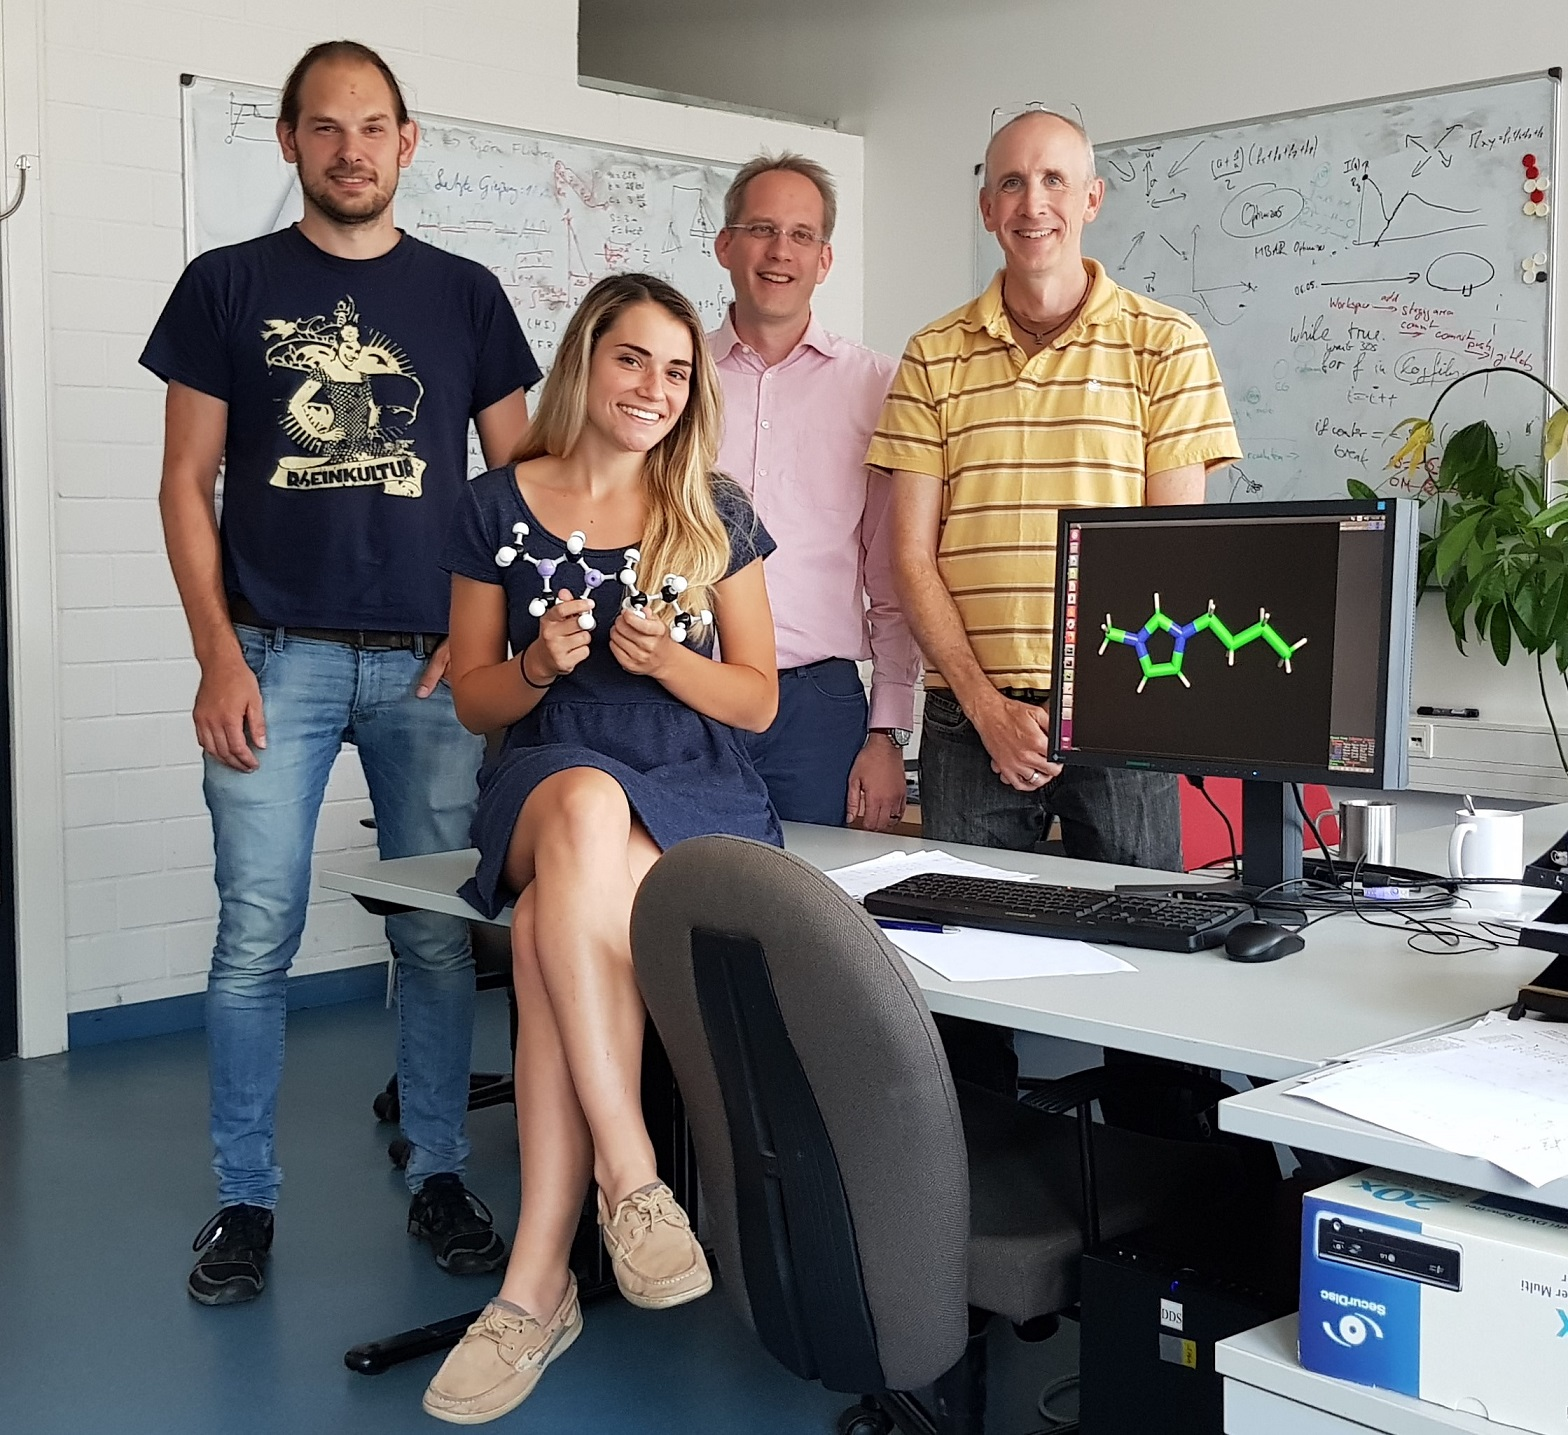 Katarina Odak with PhD student Martin Schenk and the professors Dirk Reith and Karl Kirschner. Photo: Marco Huelsmann